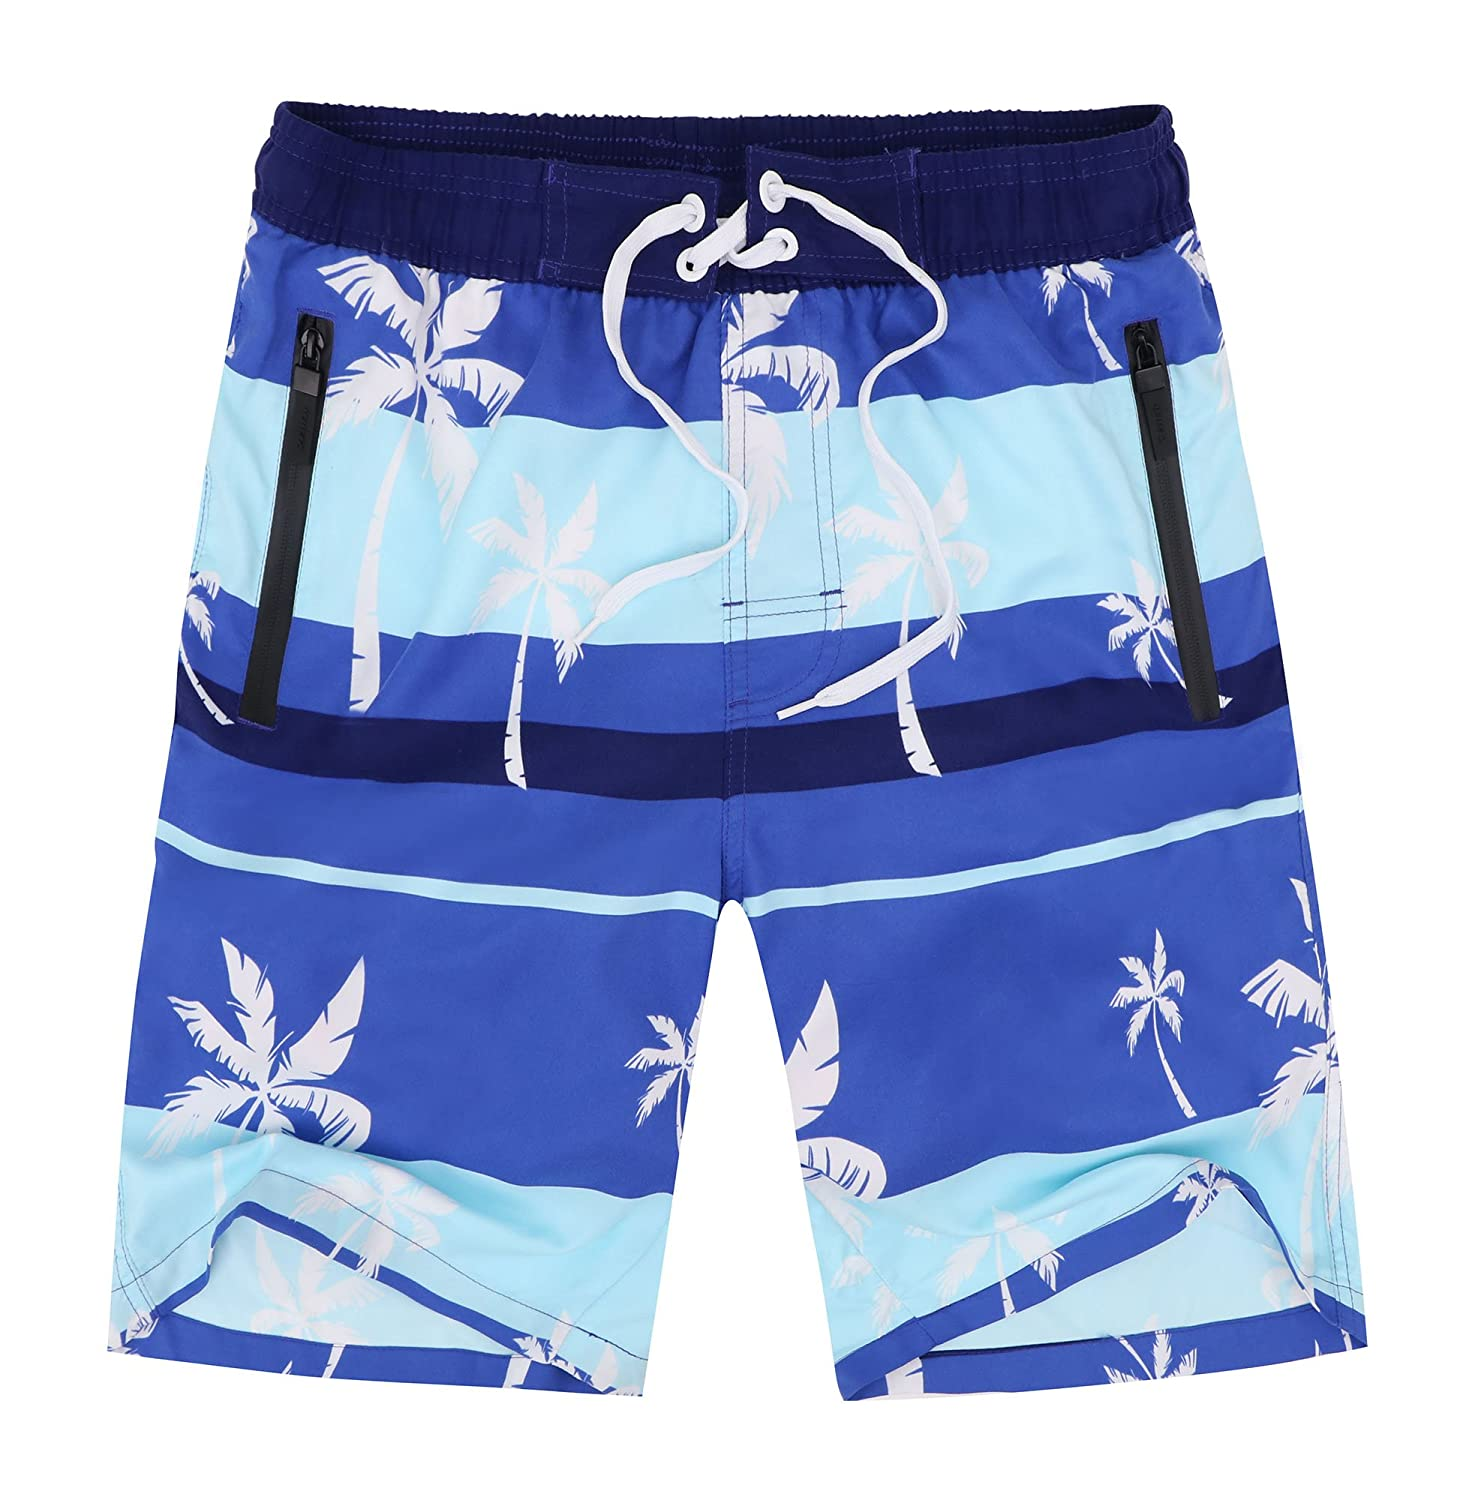 df117746c7 Adjustable drawstring for secure fit. Zipper pockets to hold small personal  items. Quick dry material; Perfect swimming trunks for swims at the beach  or in ...